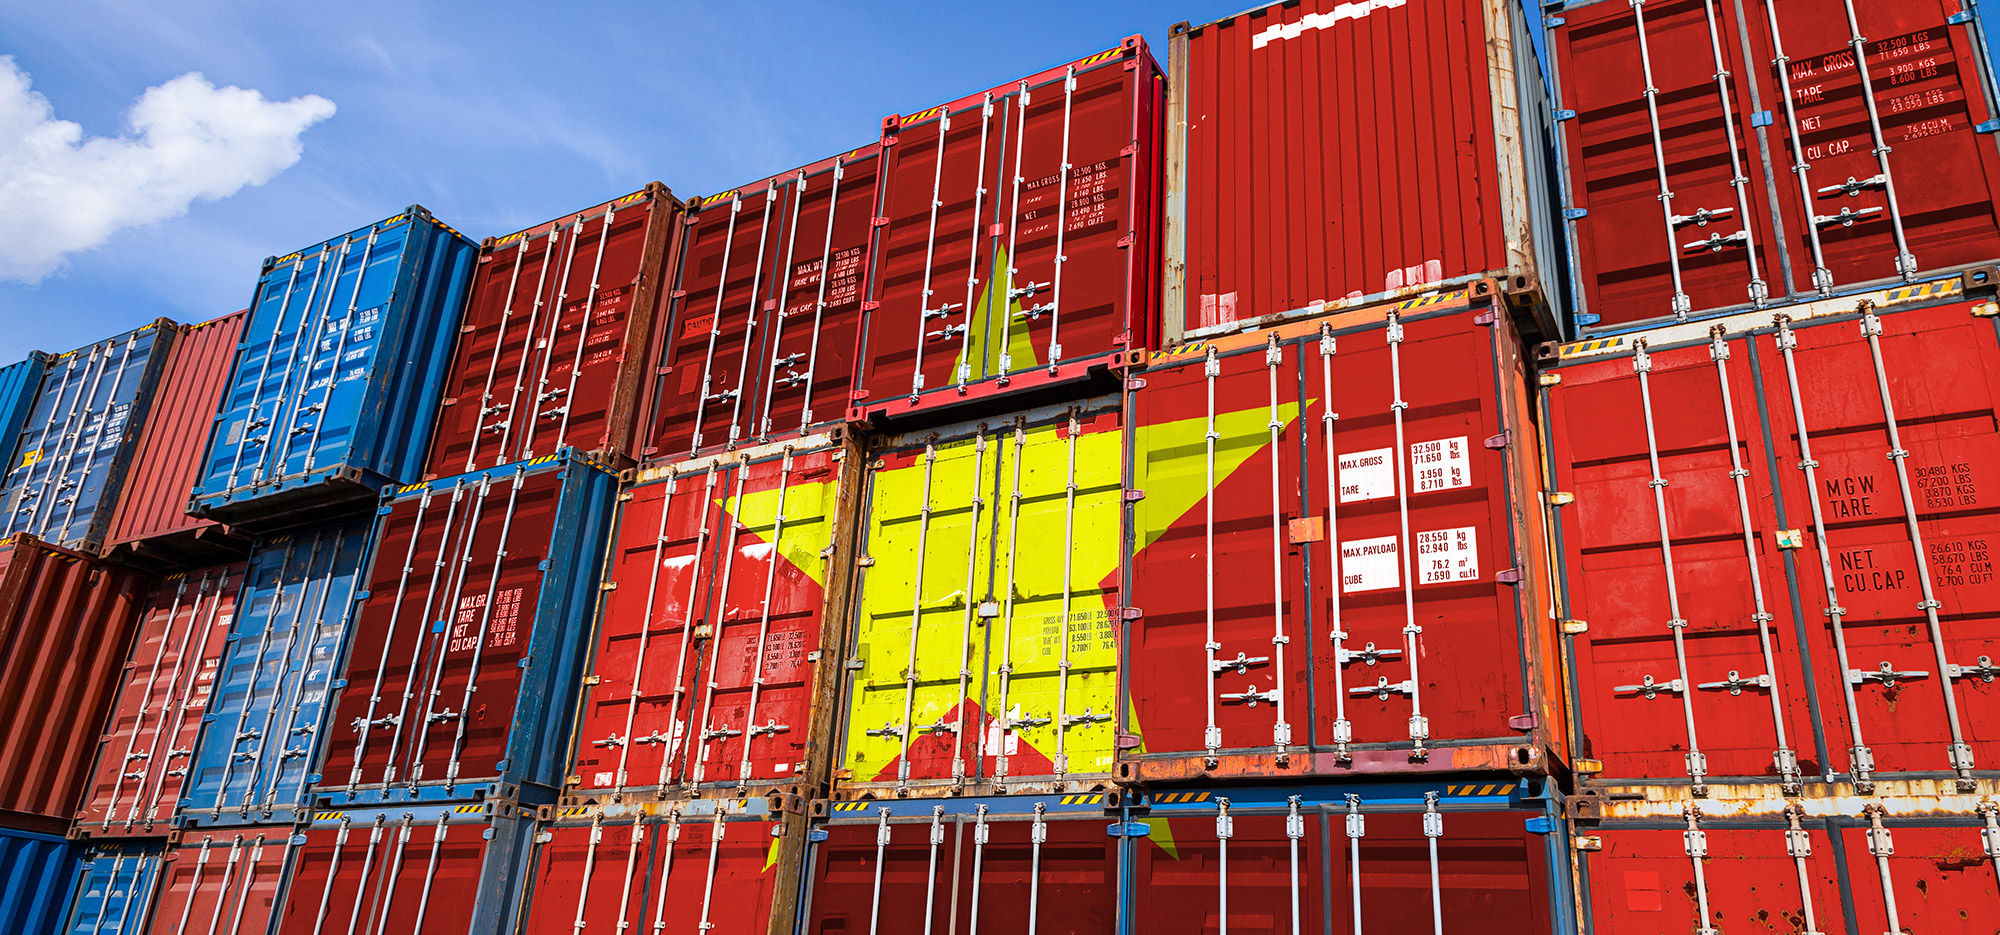 6 Considerations Before Shifting Your Supply Chain to Vietnam